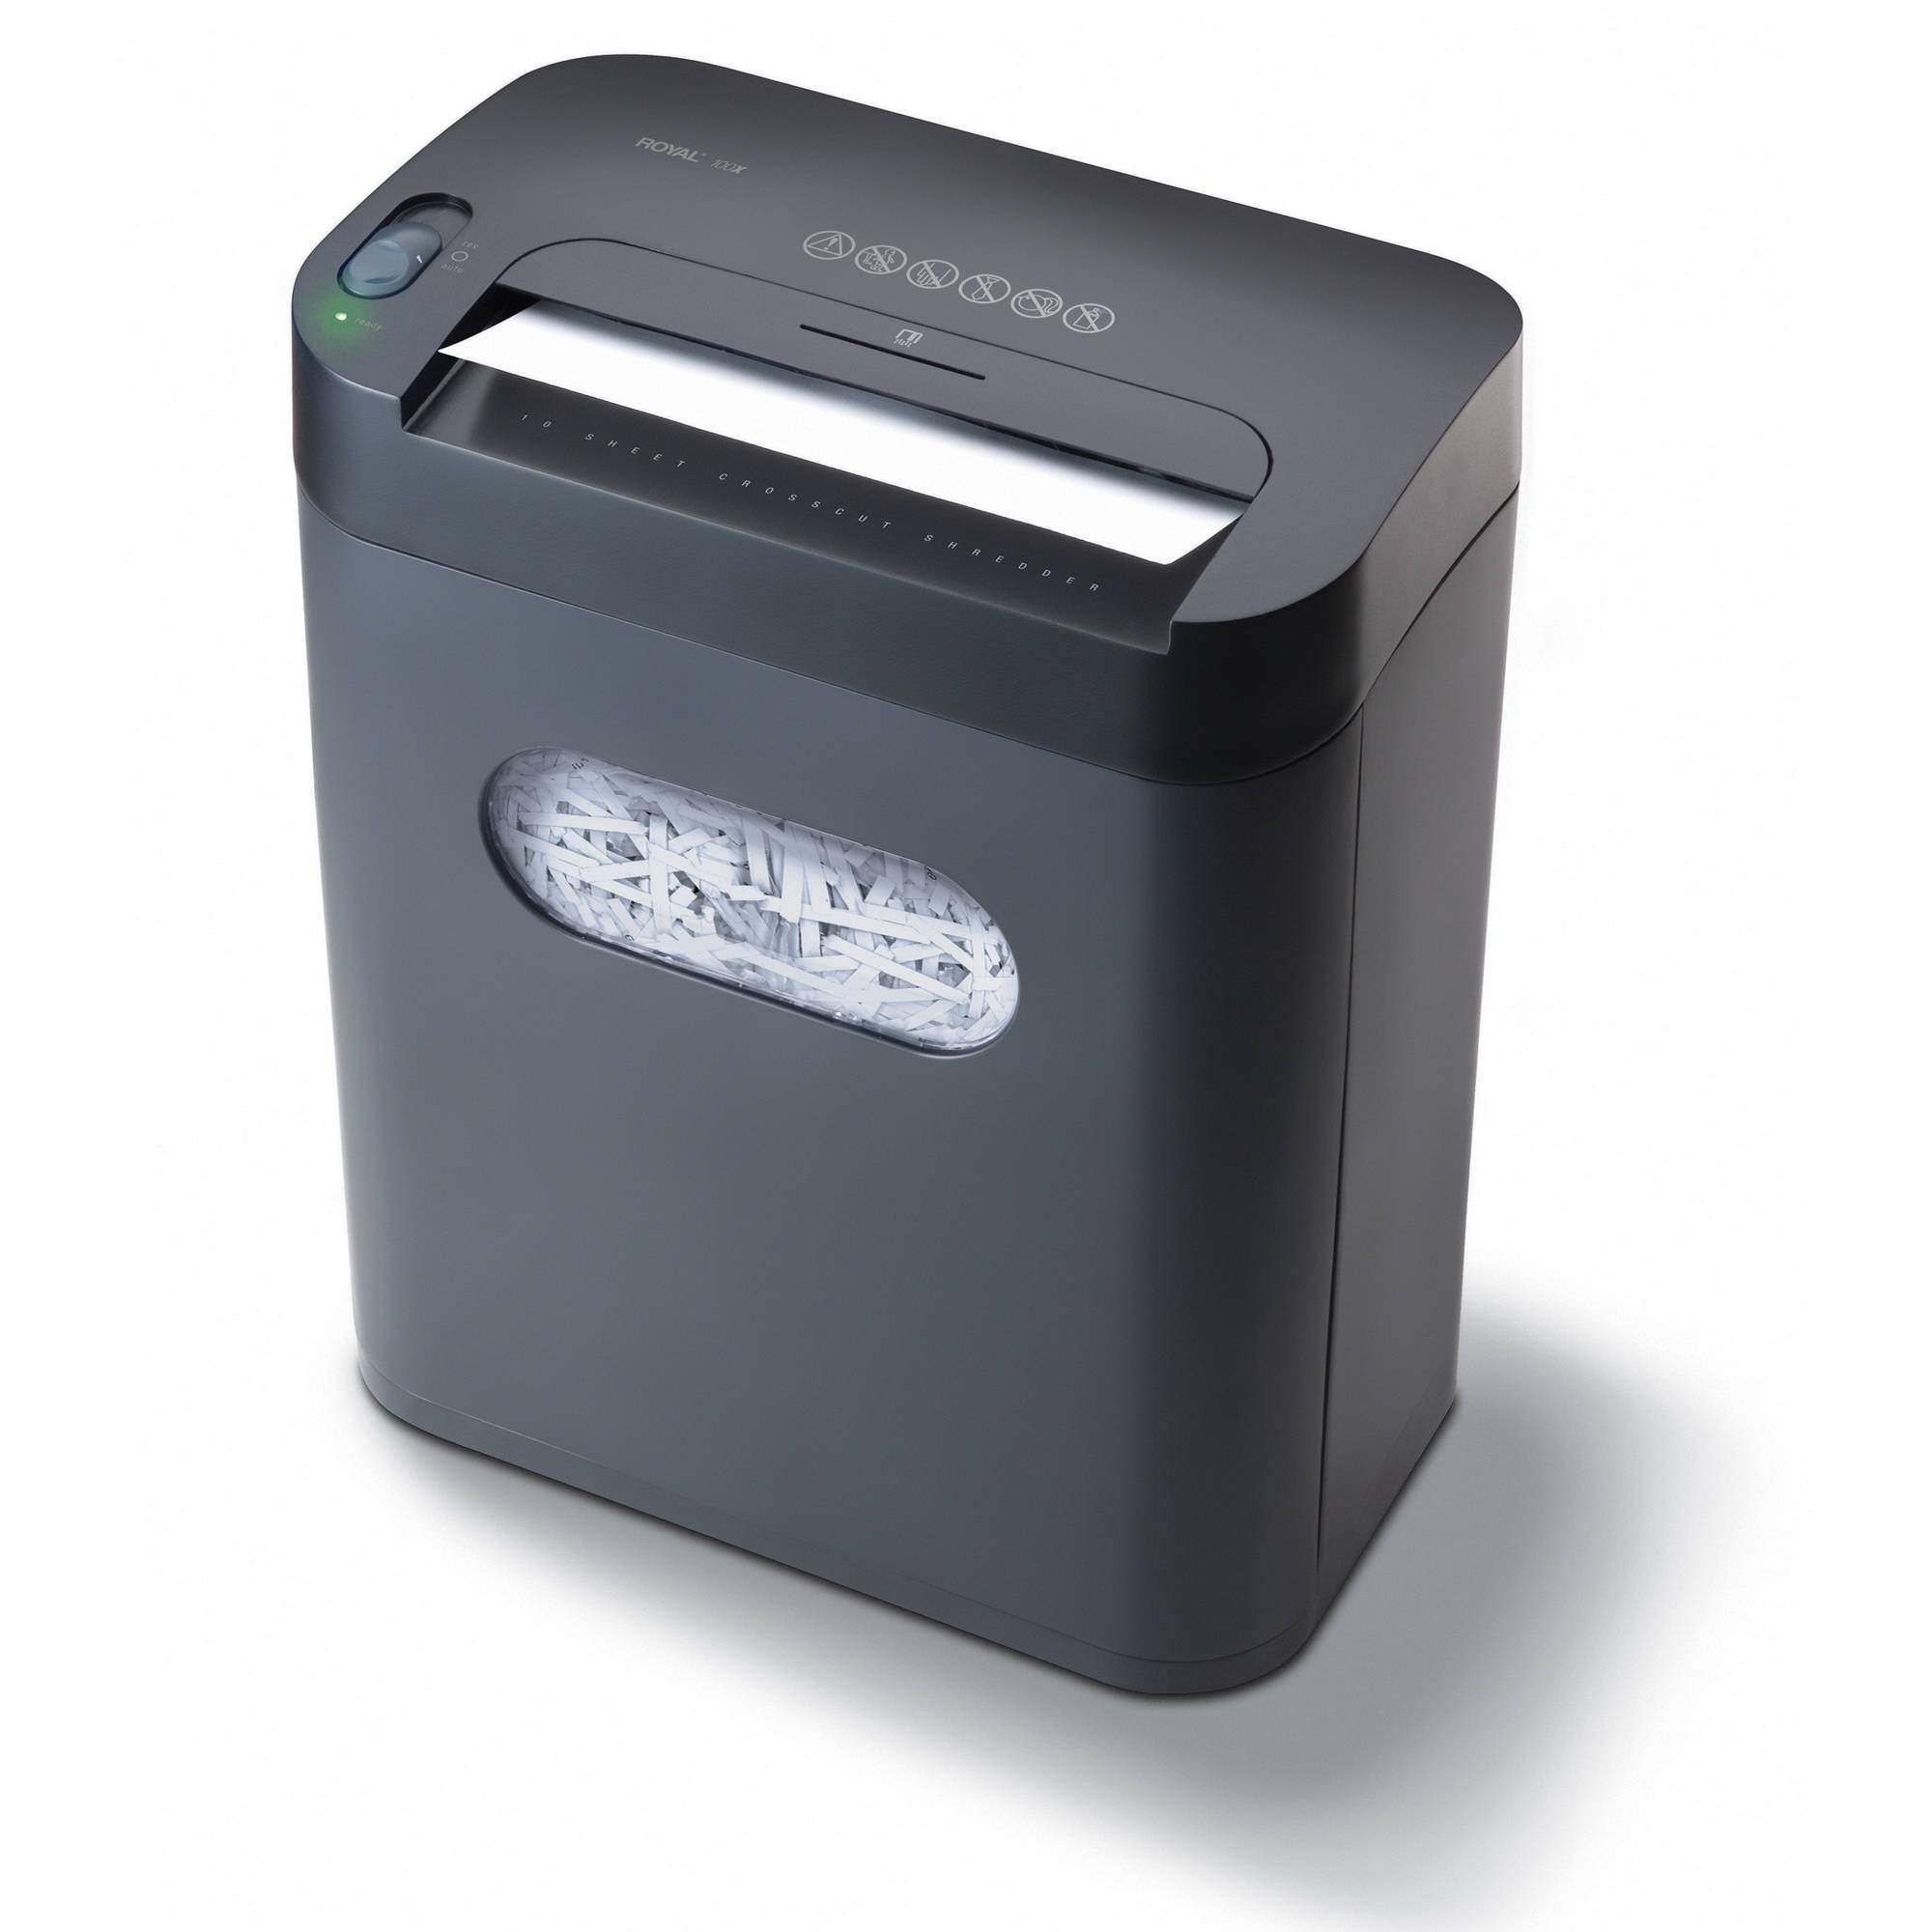 royal crosscut paper shredder Find great deals on ebay for royal paper shredder and cross cut paper shredder shop with confidence.